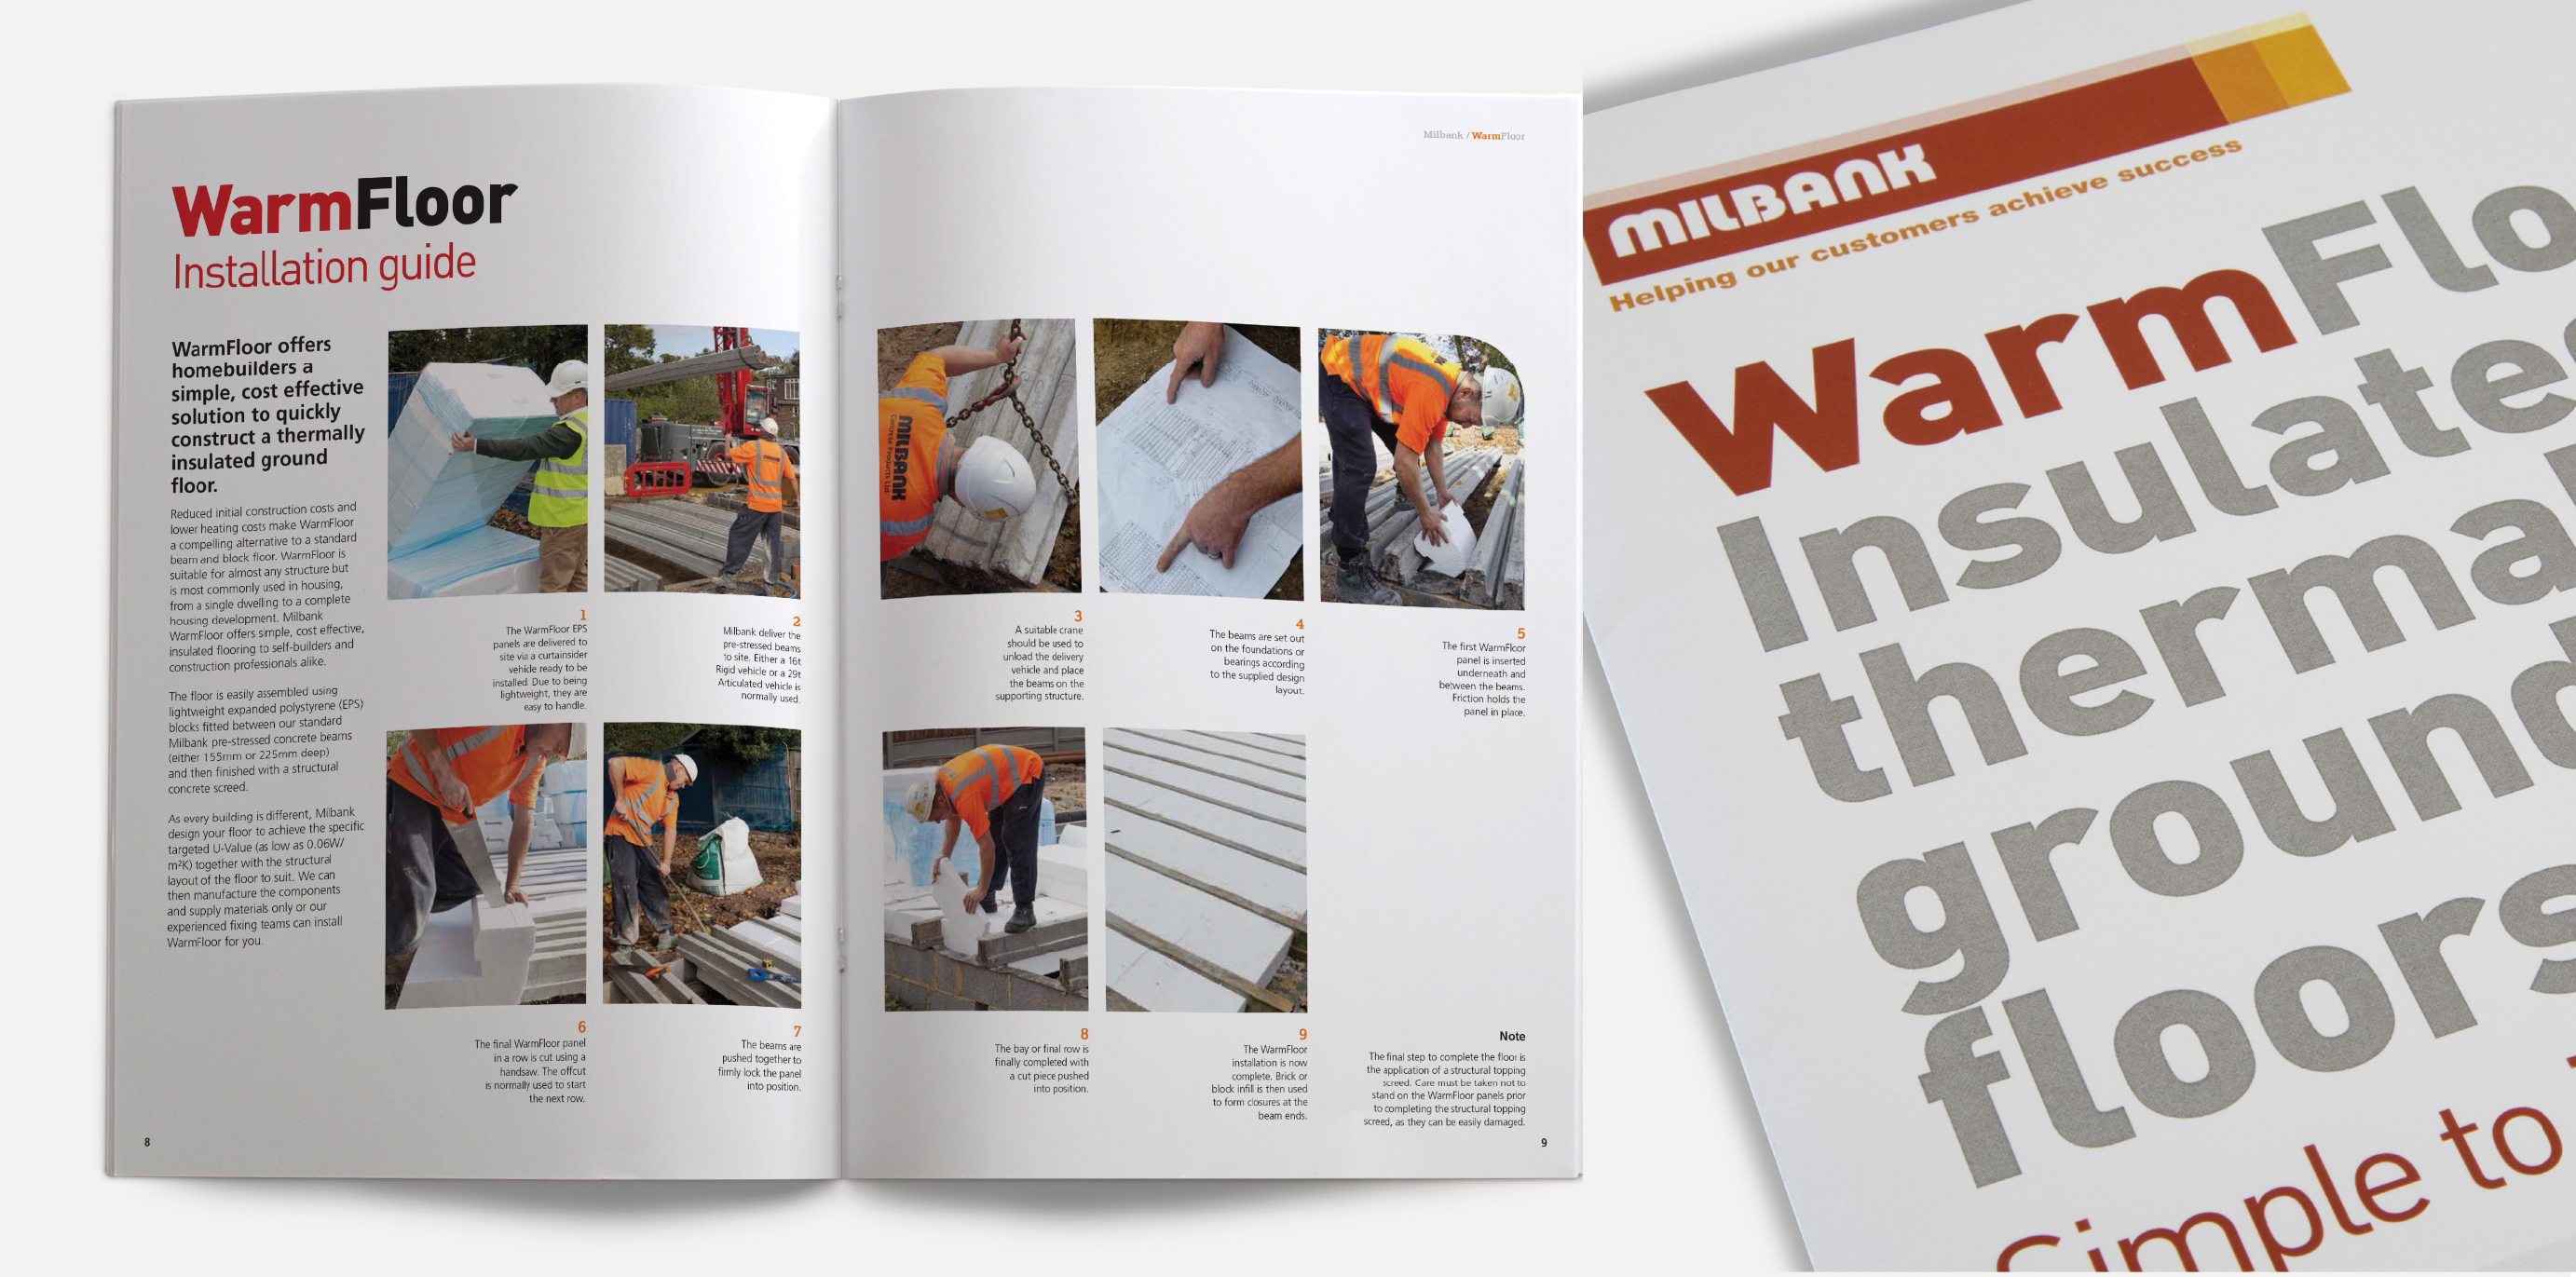 MILLBANK-PROJECT-PAGE-PR_17